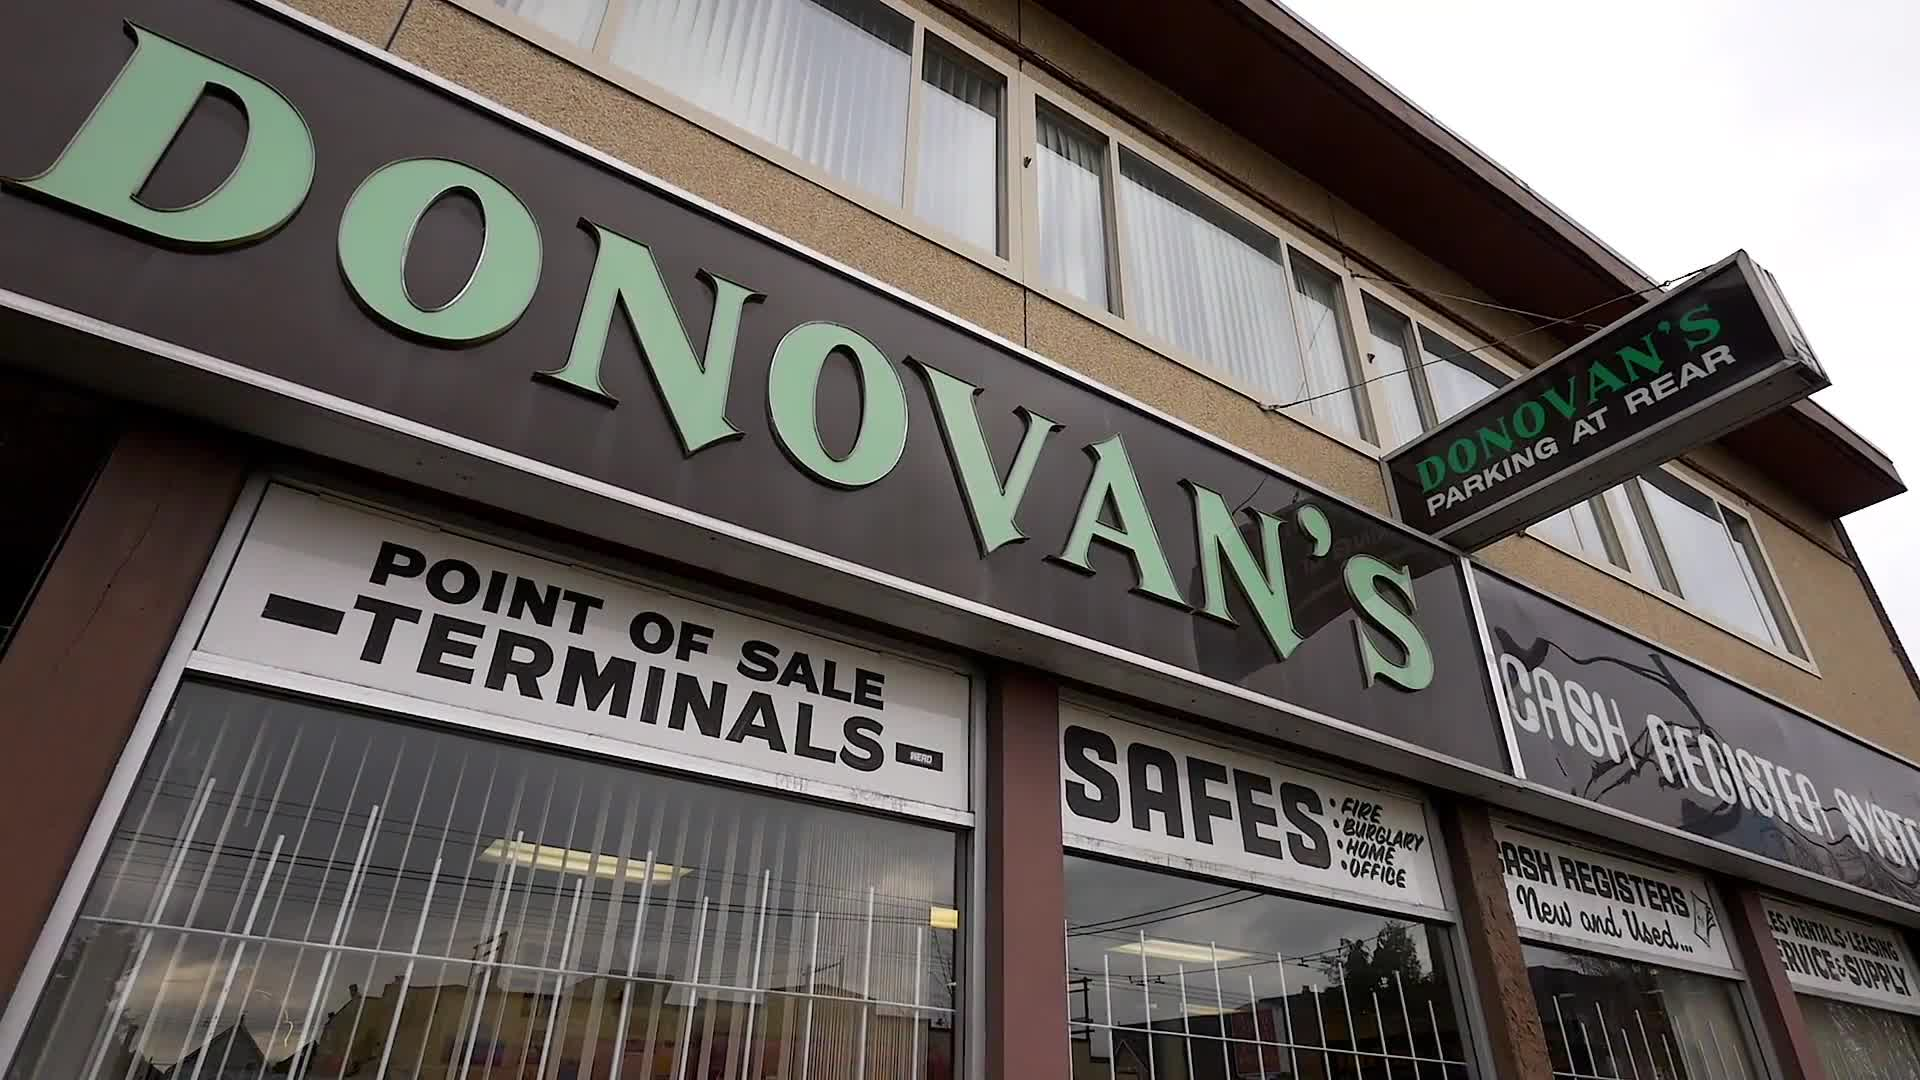 Donovan Sales Ltd - Locksmiths & Locks - 604-254-4777